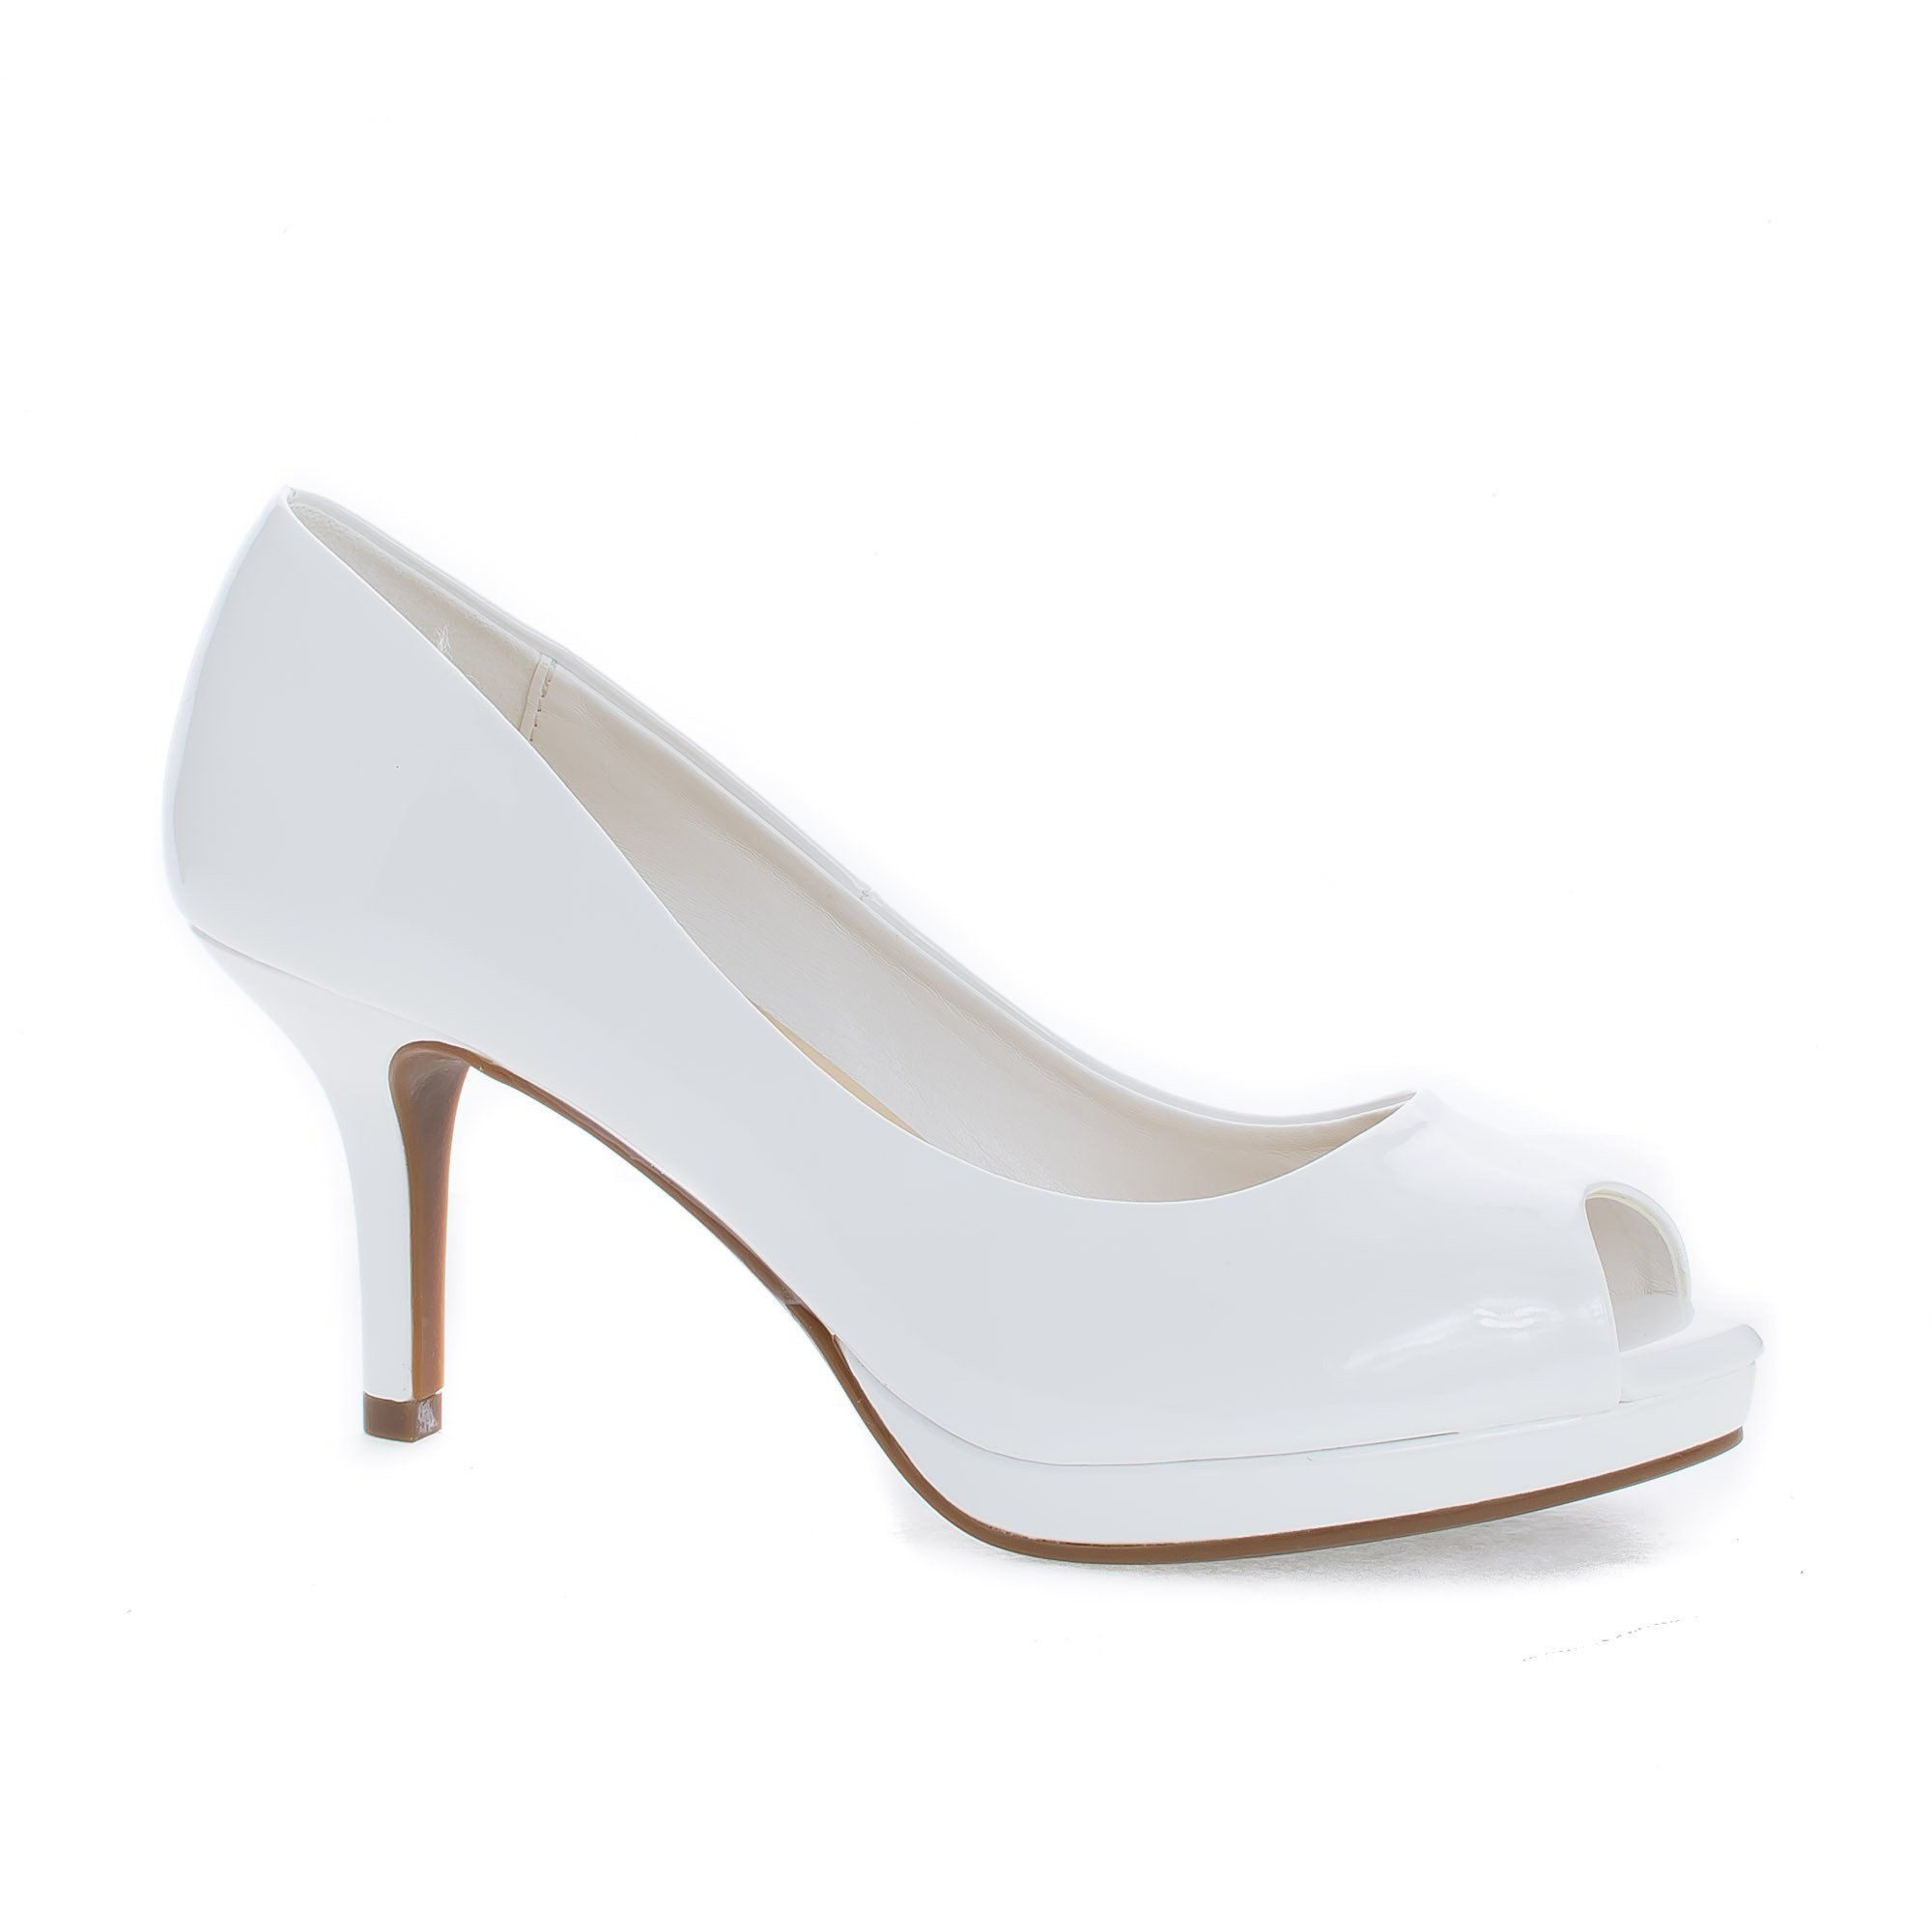 Walter By Classified, Peep Toe Extra Comfort Insole Stiletto